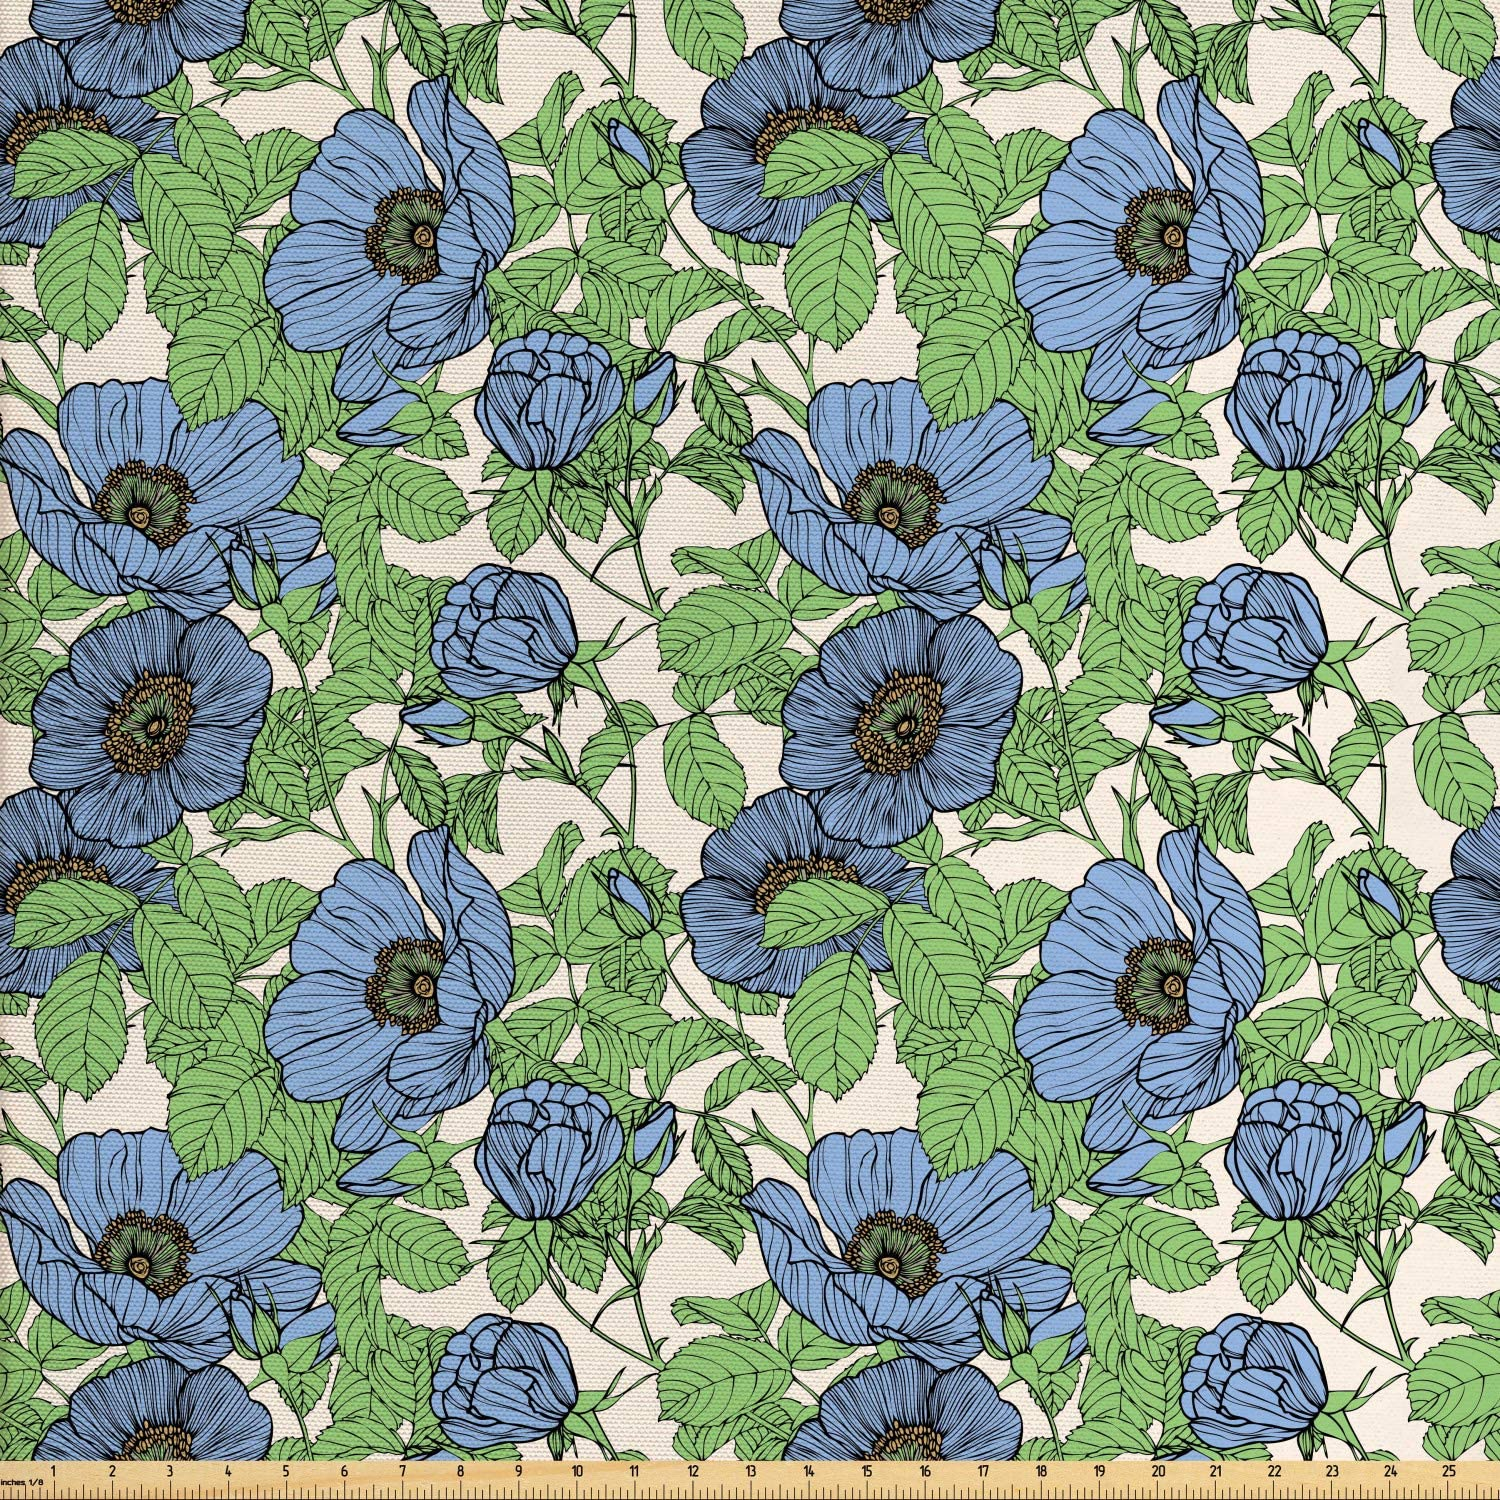 Ambesonne Floral Fabric by The Yard, Hand Drawn Bold Flowers and Leaves Arrangement, Decorative Fabric for Upholstery and Home Accents, 5 Yards, Green Blue